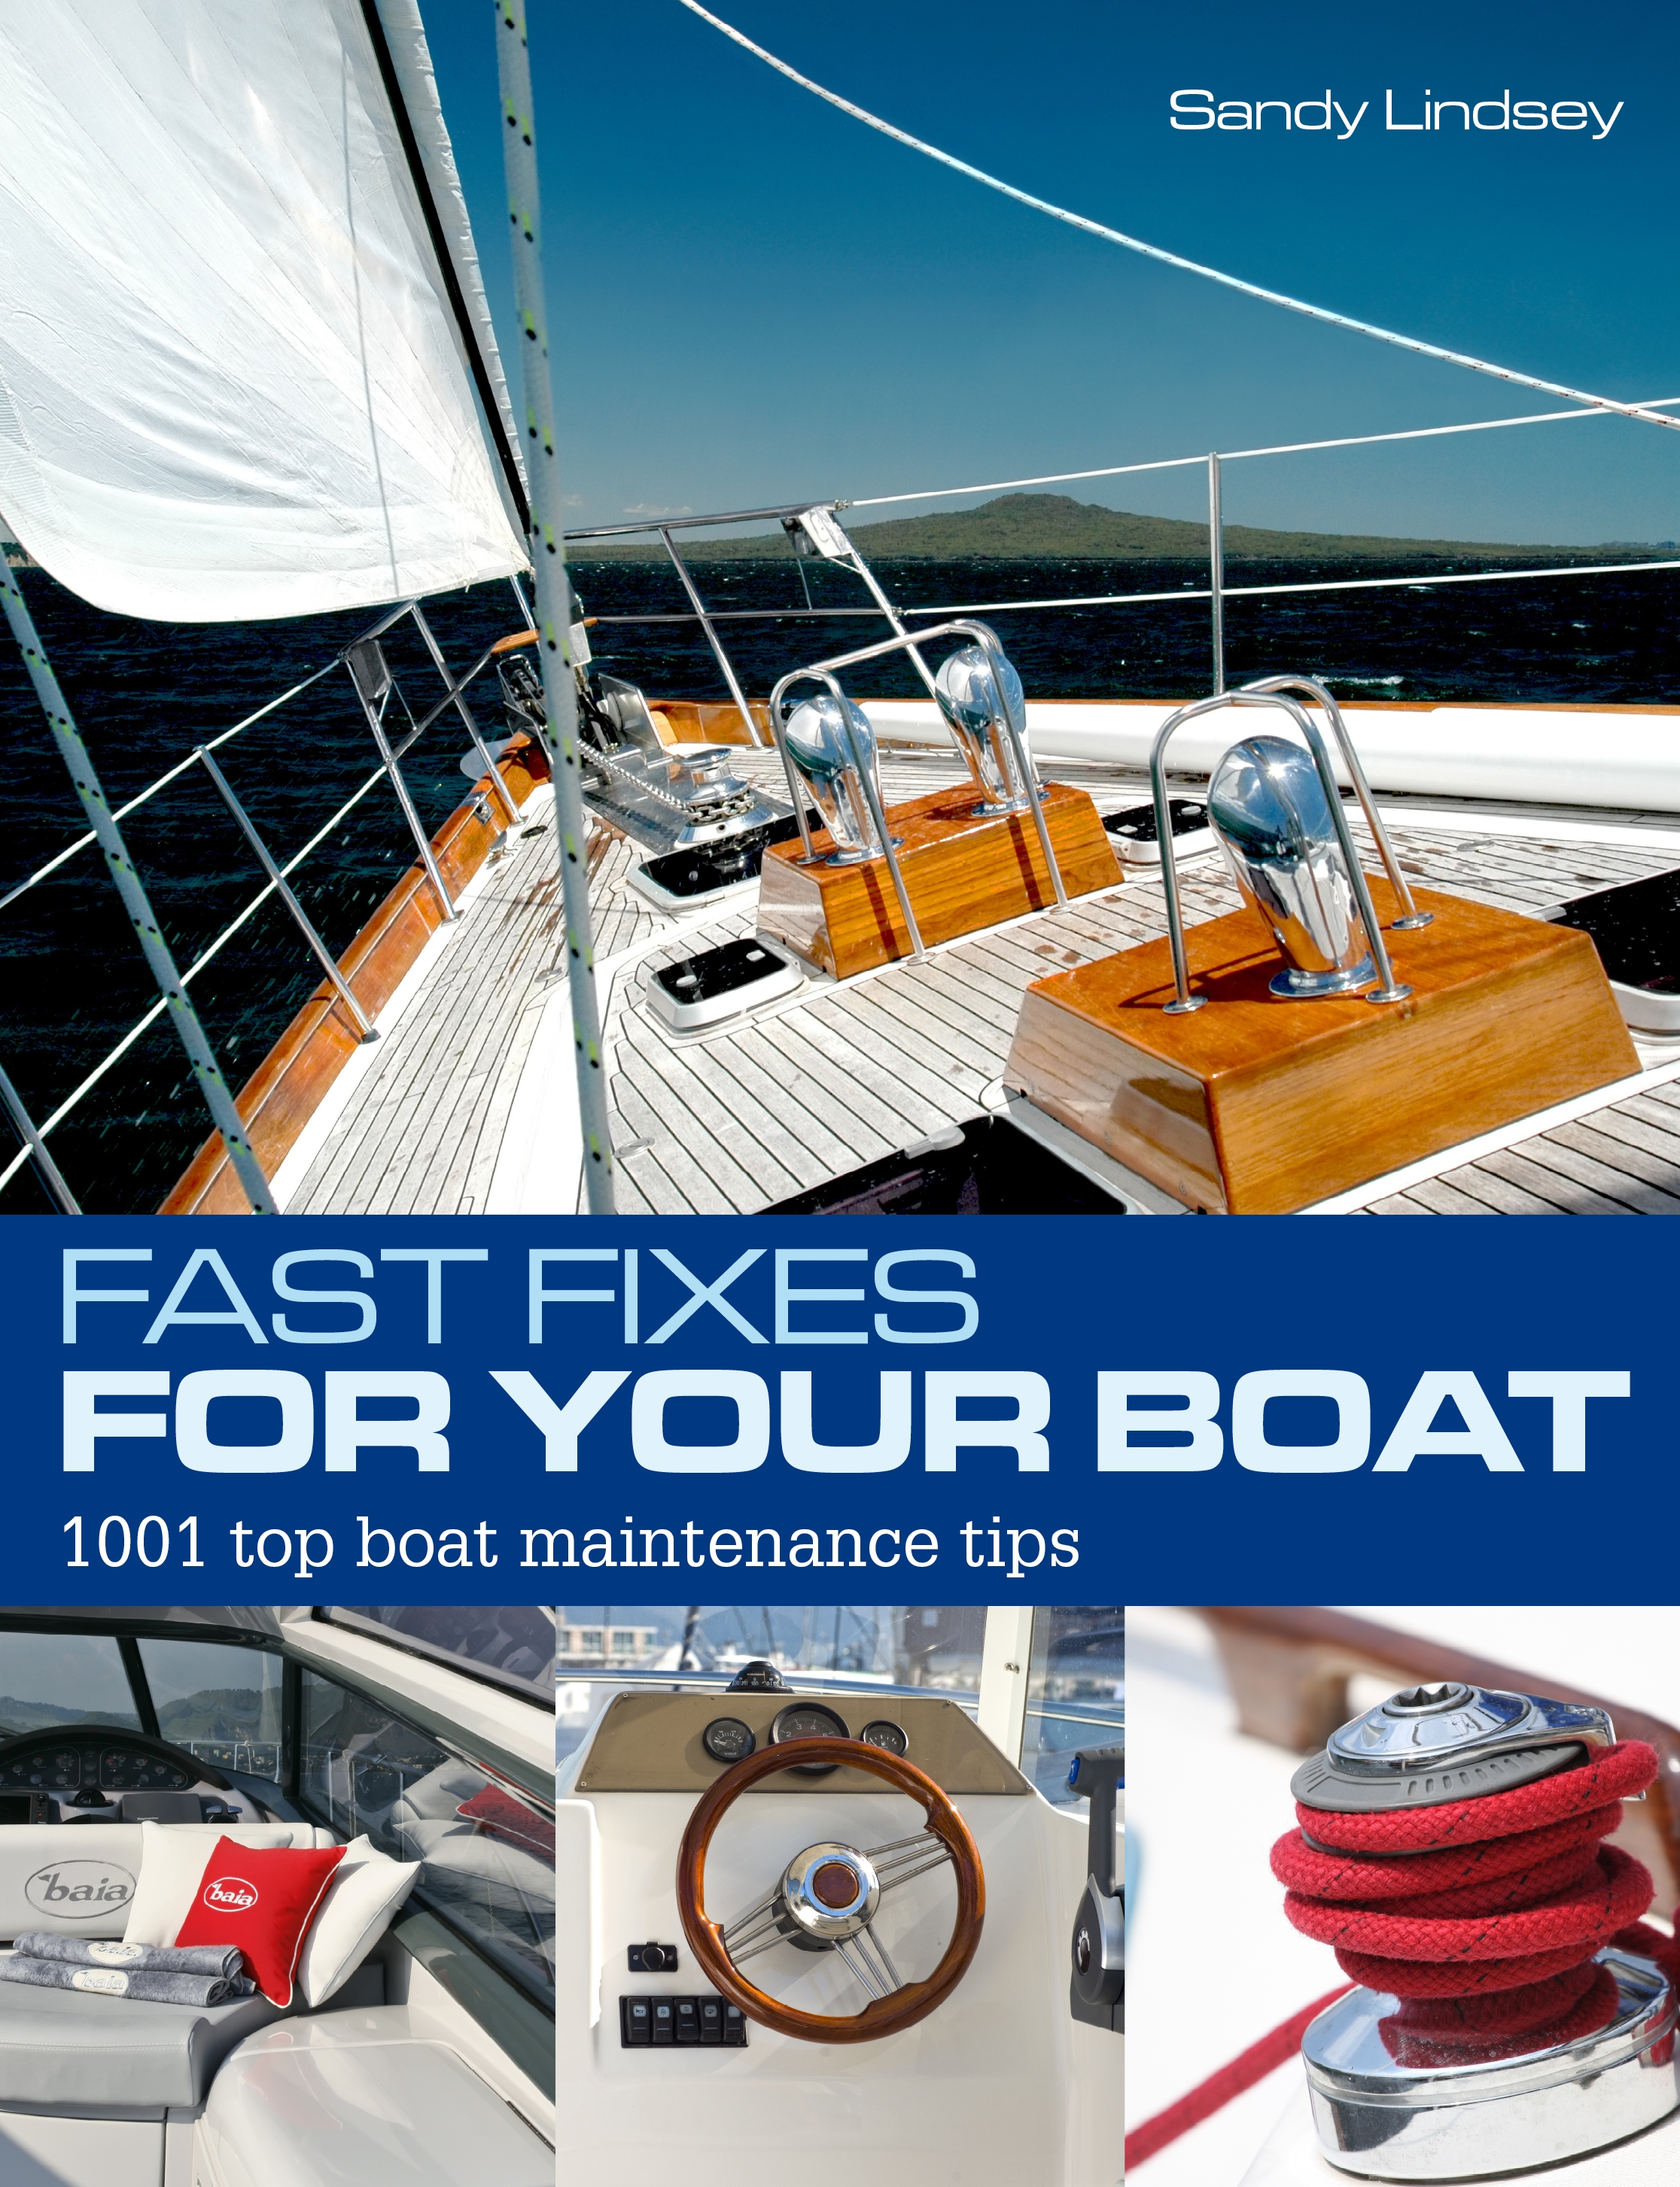 Fast Fixes for Your Boat 1001 Top Boat Maintenance Tips